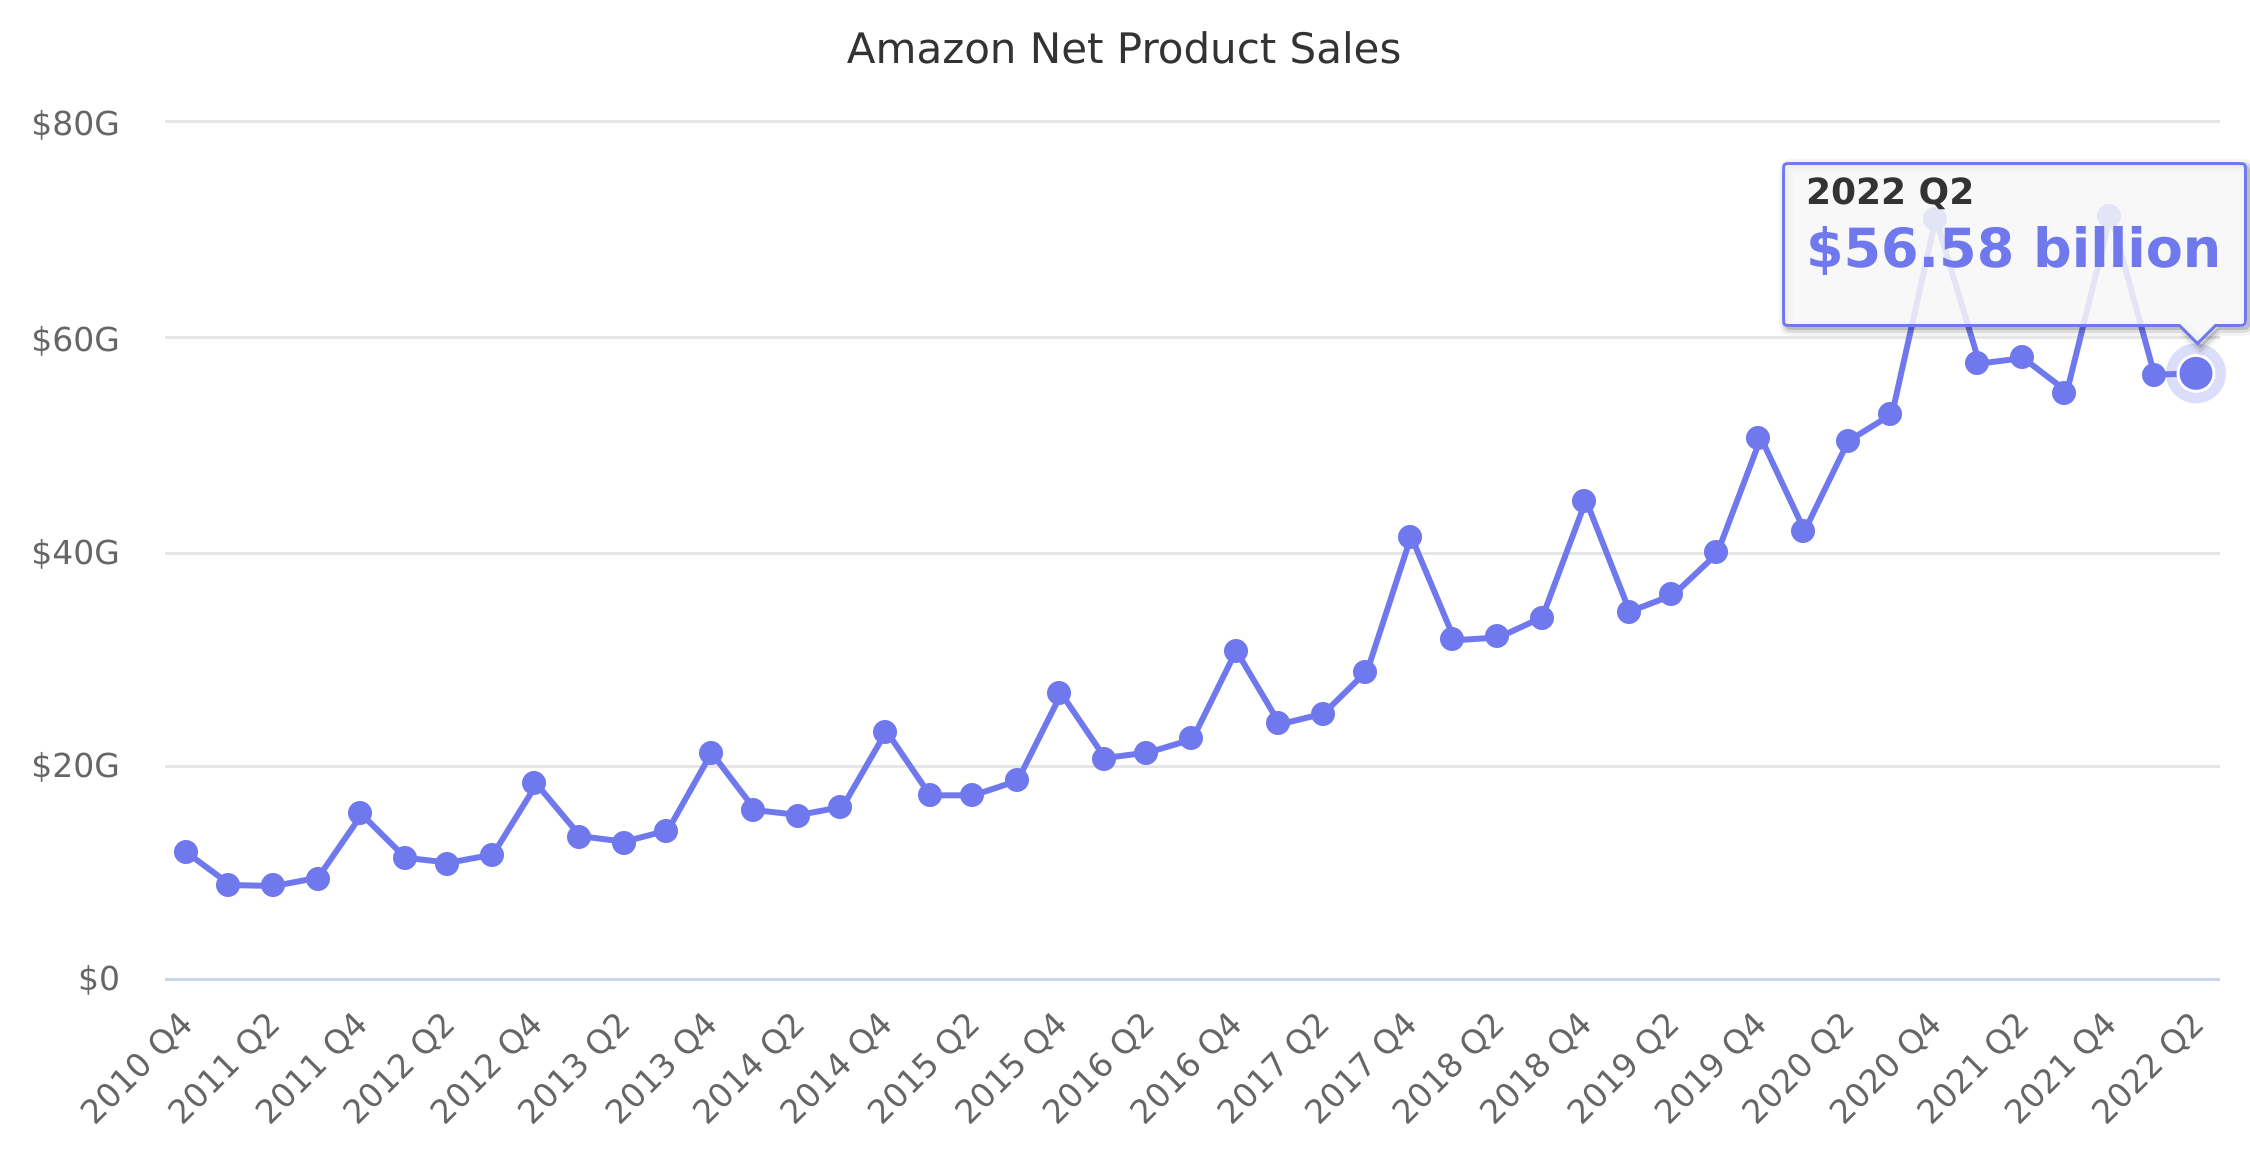 Amazon Net Product Sales 2010-2017